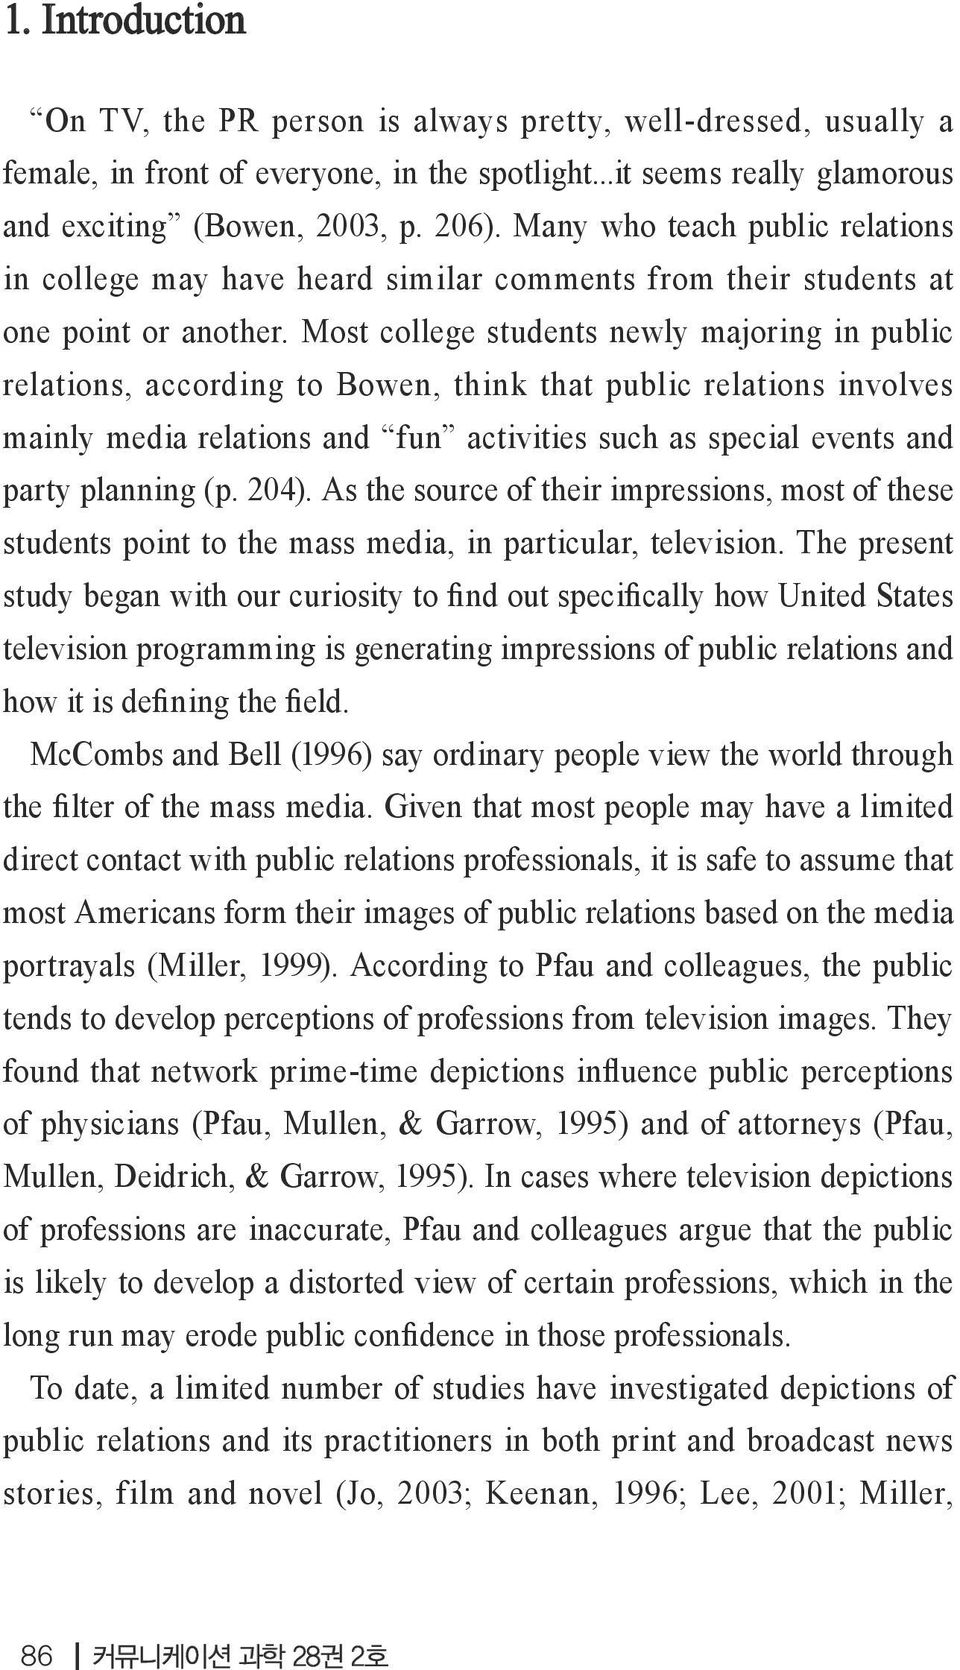 Most college students newly majoring in public relations, according to Bowen, think that public relations involves mainly media relations and fun activities such as special events and party planning